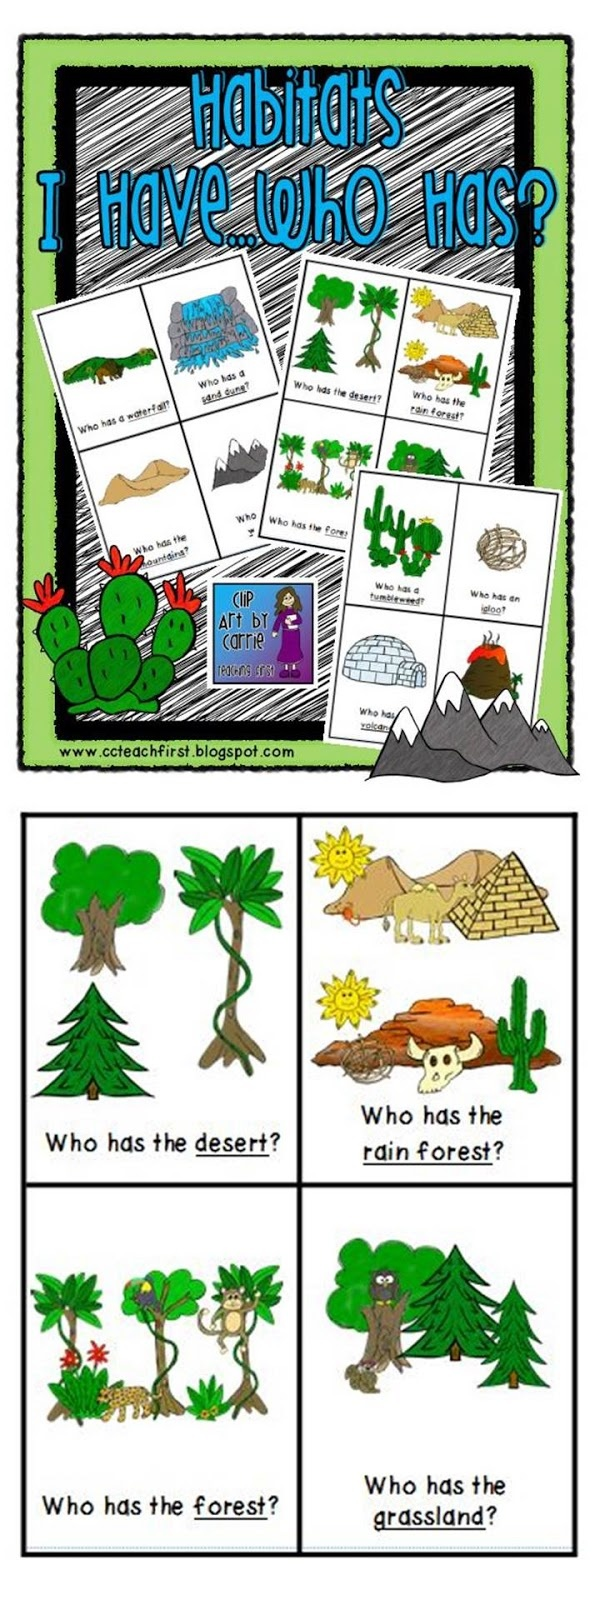 Forest clipart forest habitat. Owl in a